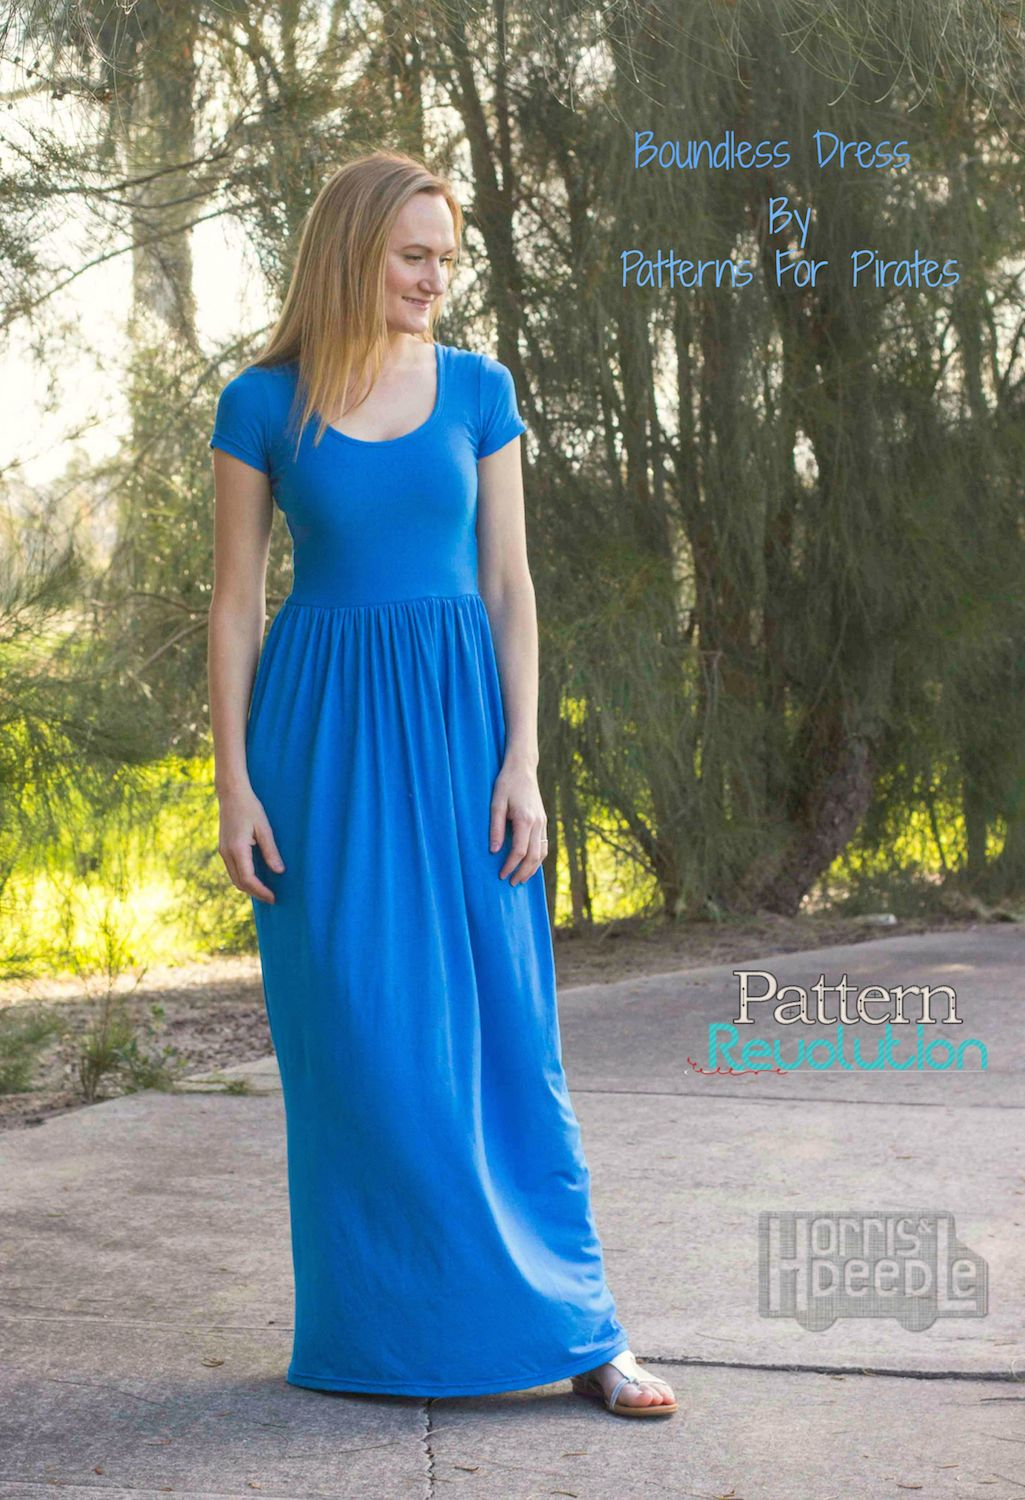 The Boundless Knit Dress By Patterns For Pirates Pattern Revolution